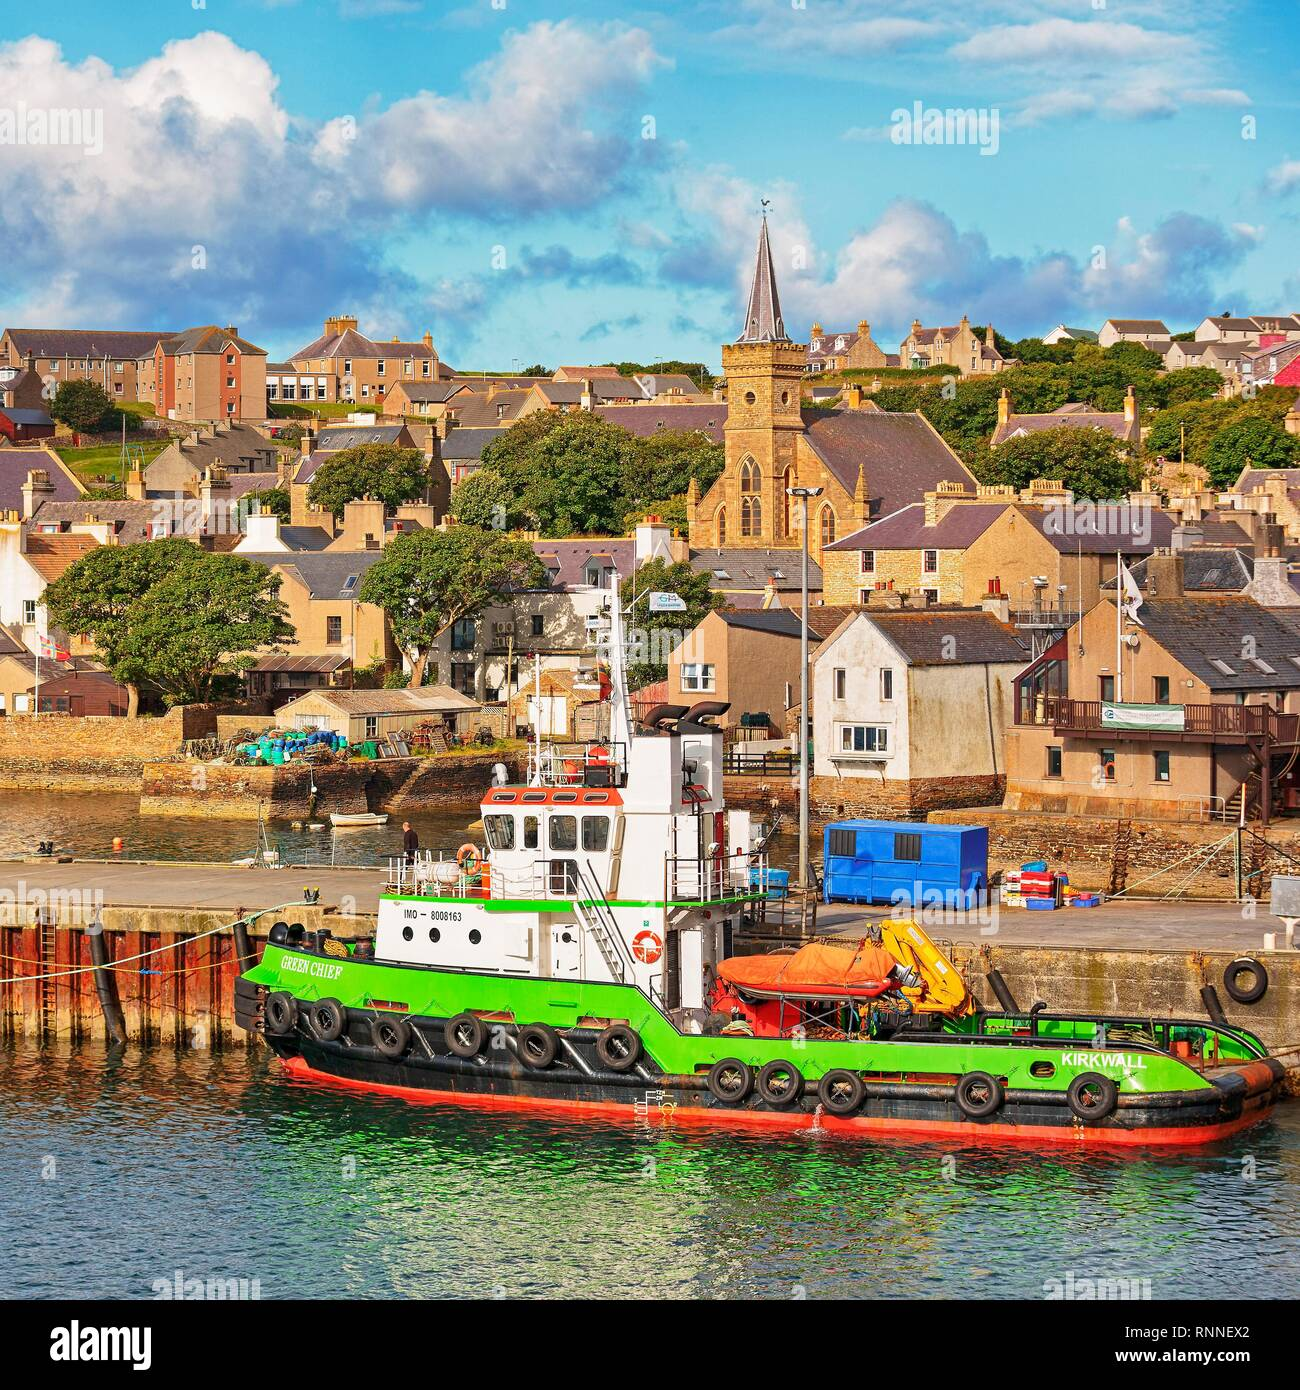 Port of Stromness, Mainland, Orkney Islands, Scotland, Great Britain Stock Photo